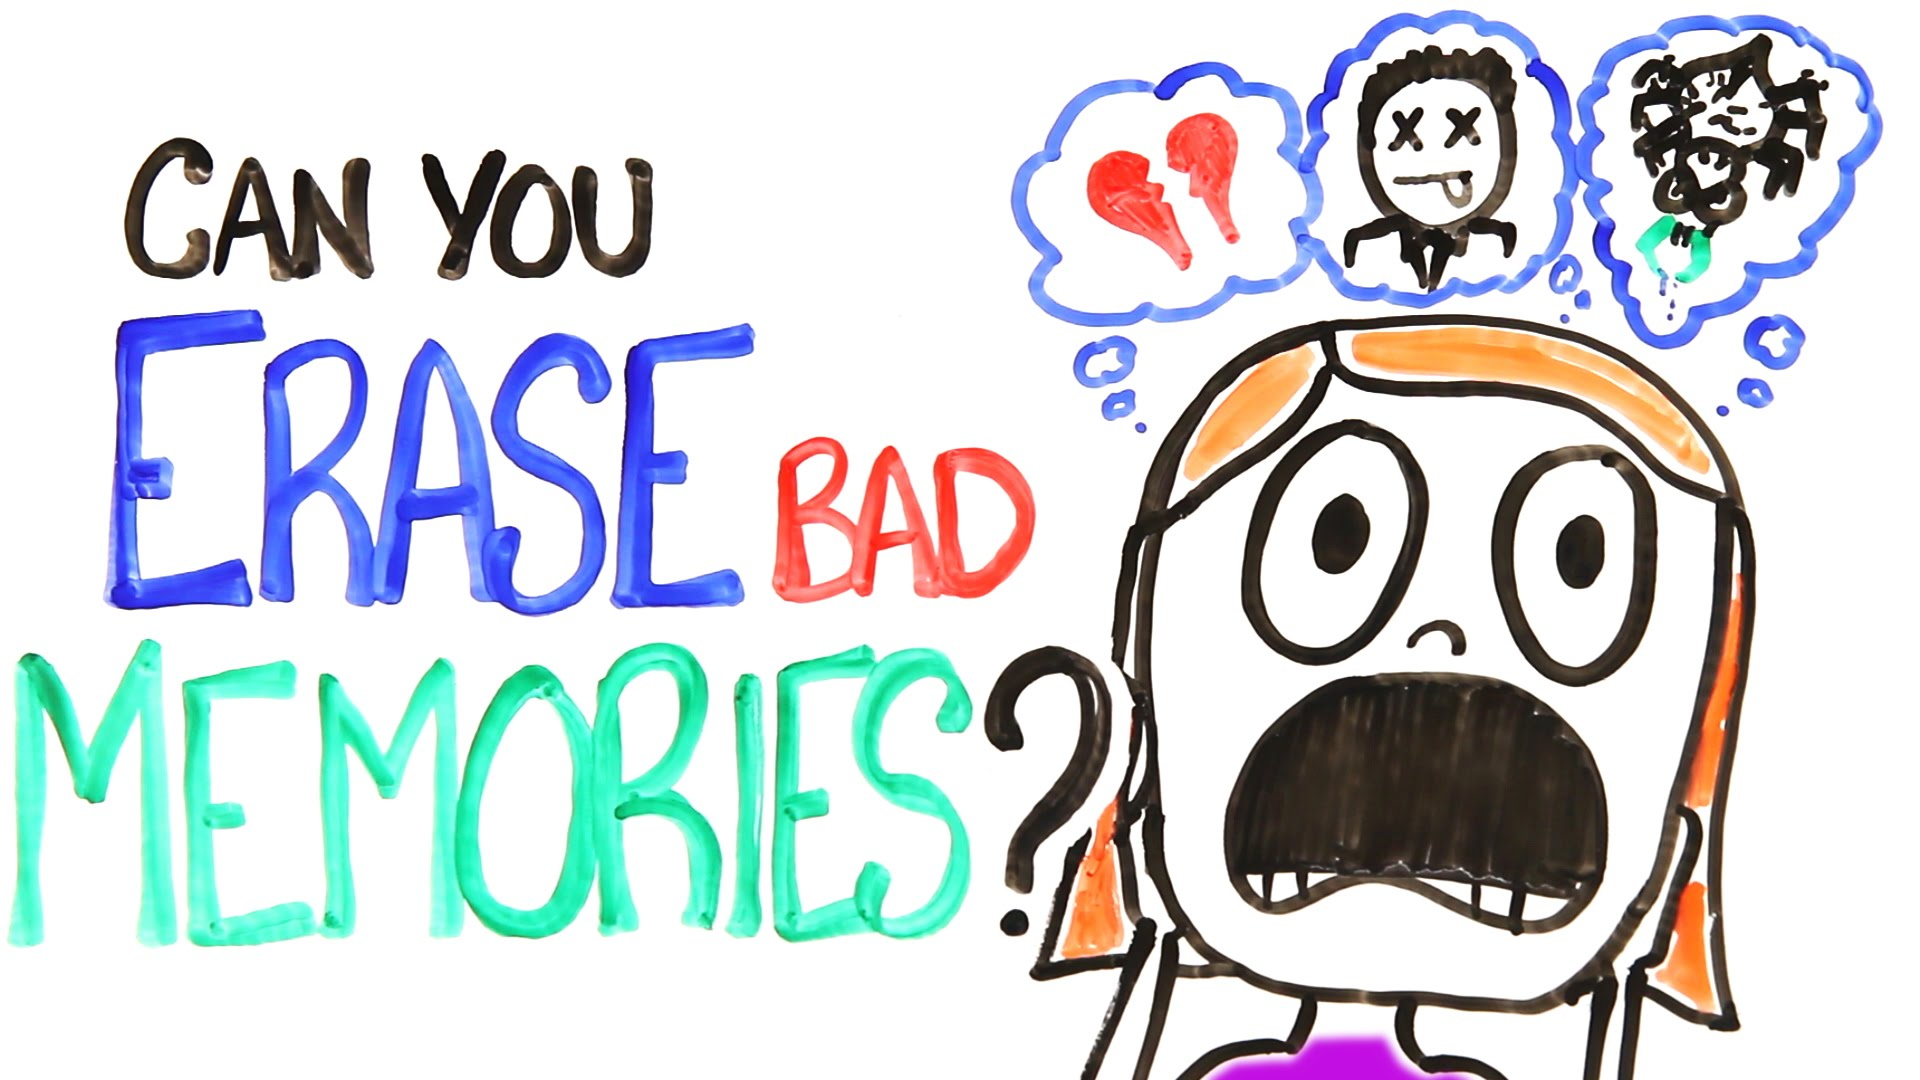 Bad clipart unpleasant. Can you erase memories